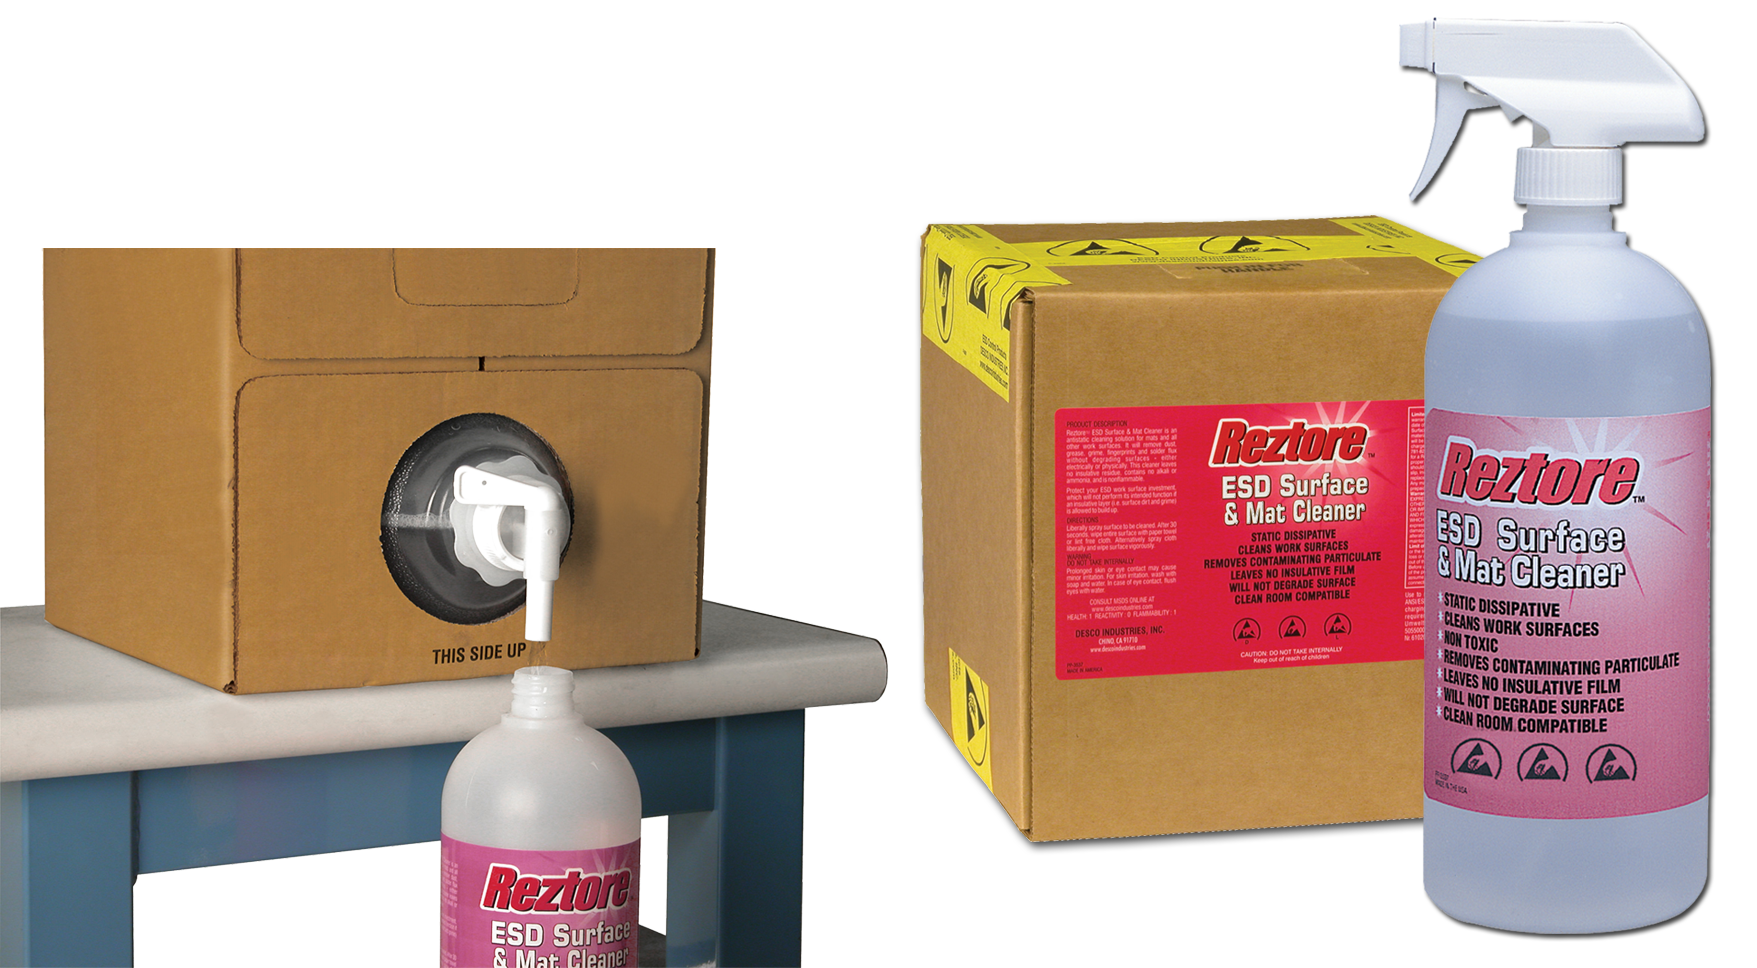 Reztore ESD Surface & Mat Cleaner